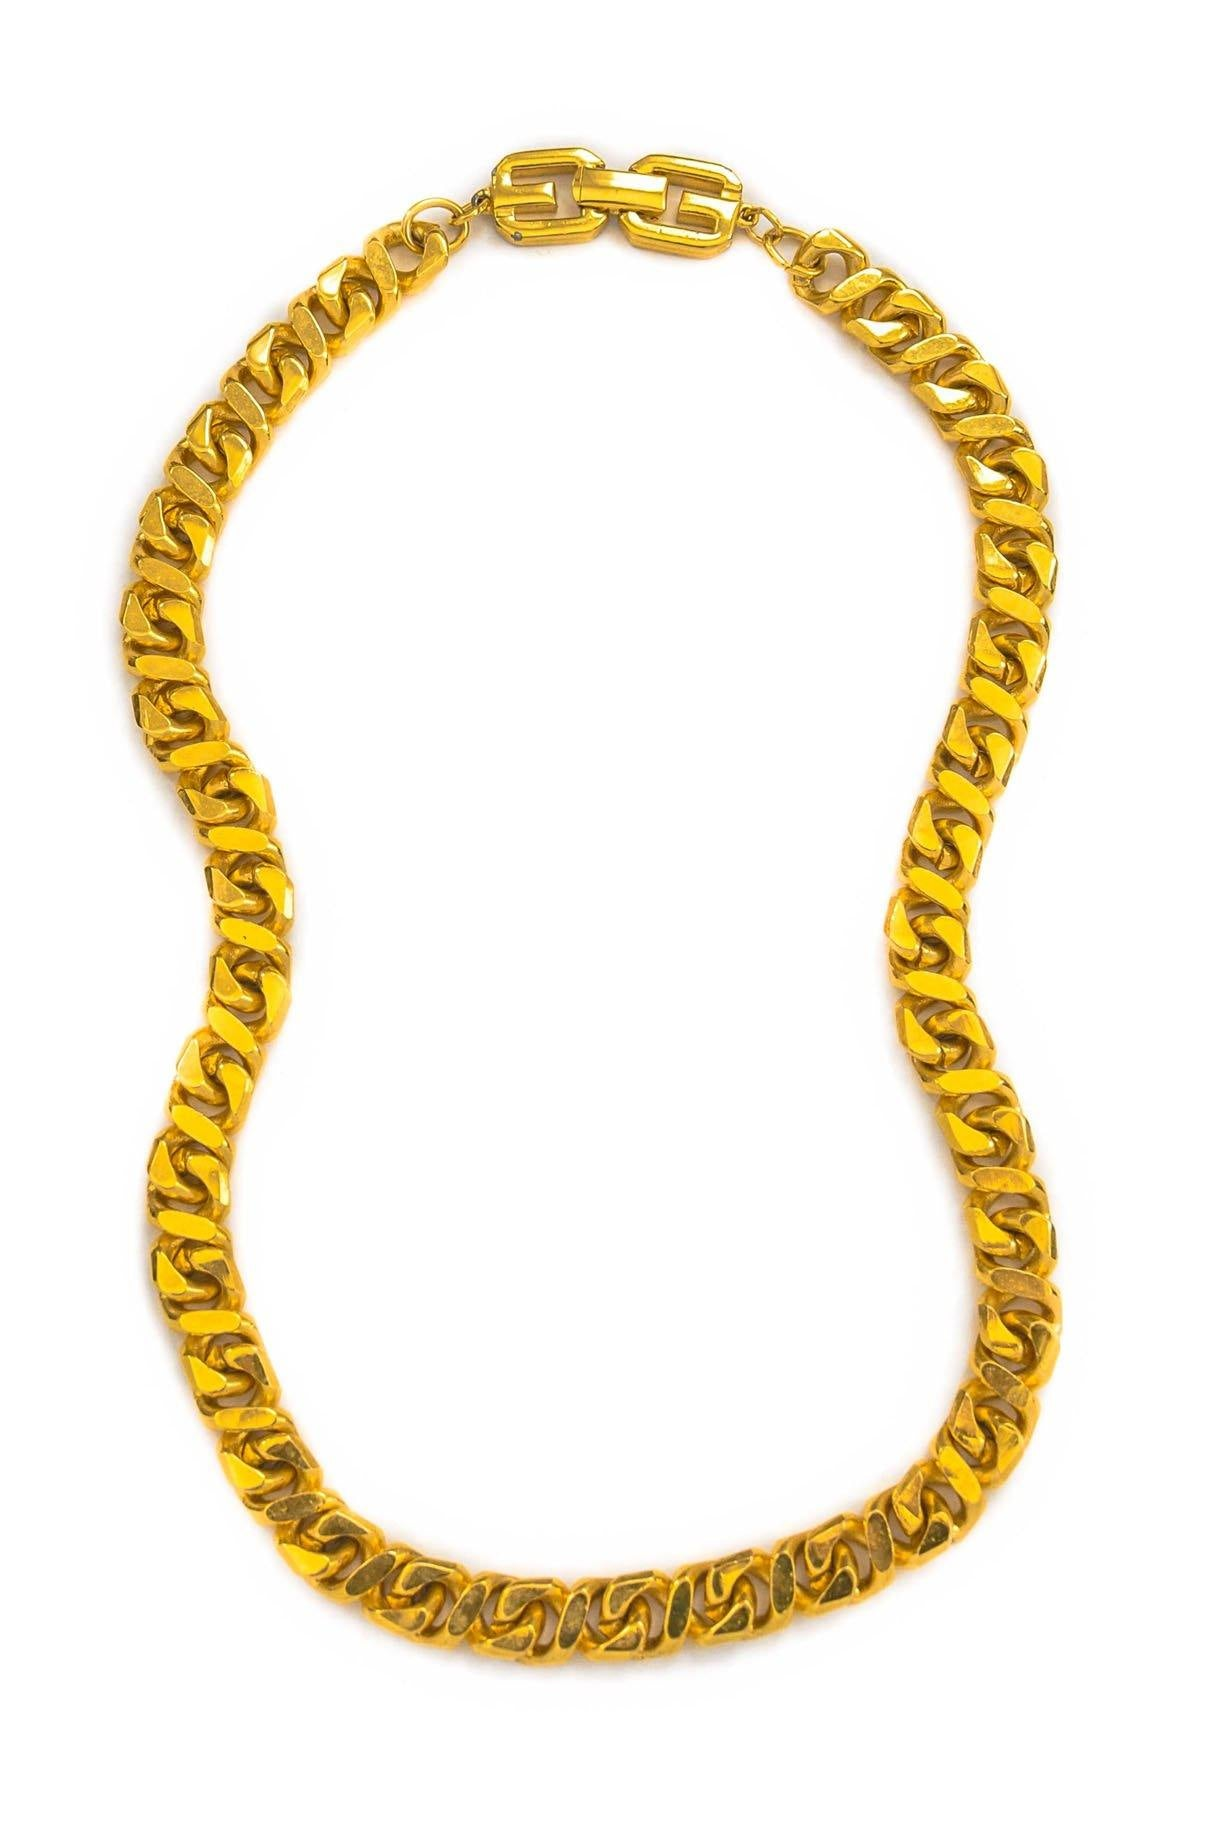 Vintage Givenchy Flat Curb Chain Necklace from Sweet and Spark